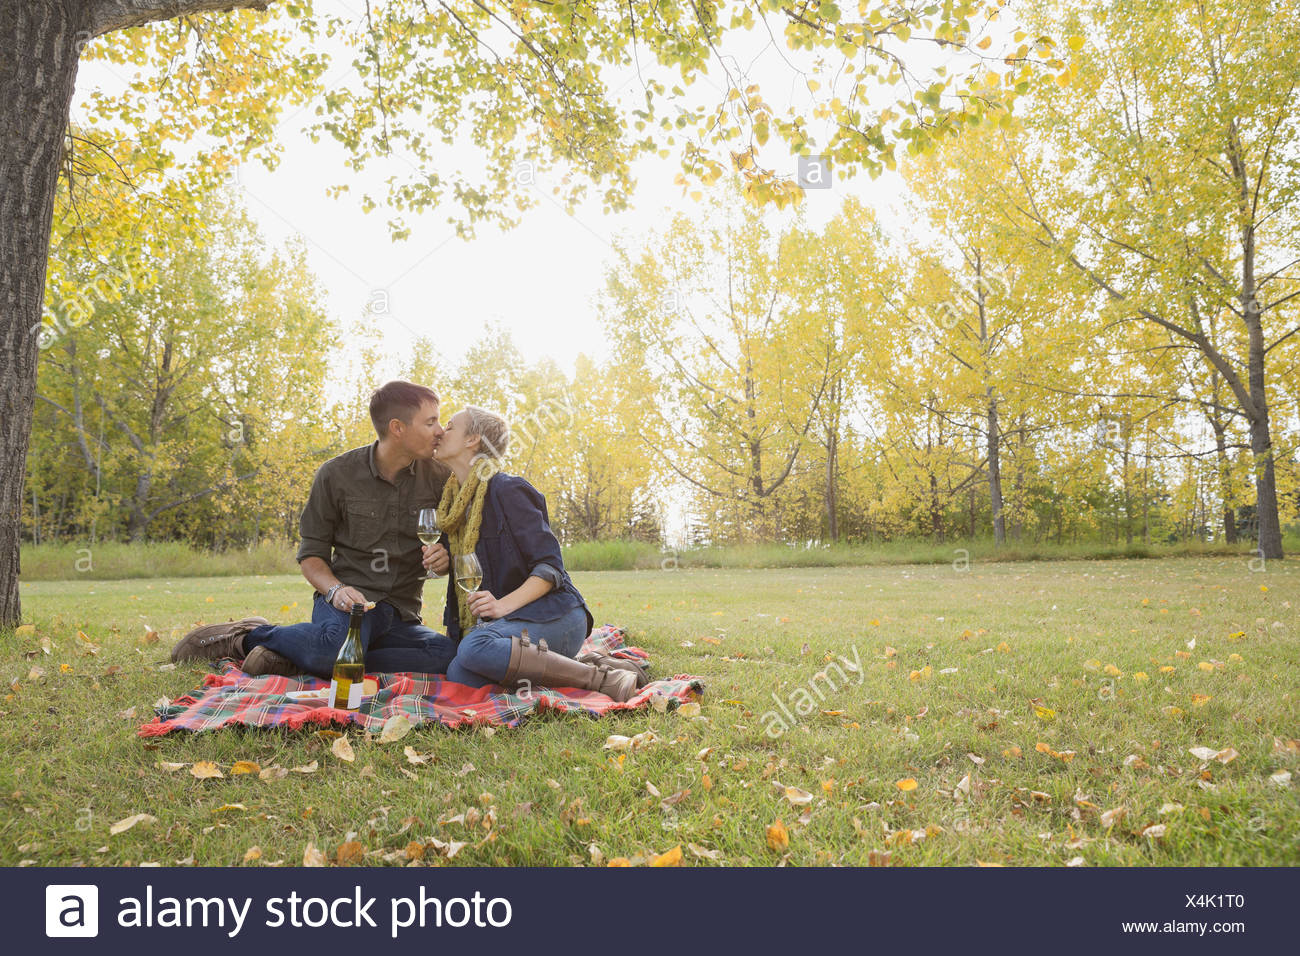 Loving couple with wineglasses kissing at park - Stock Image